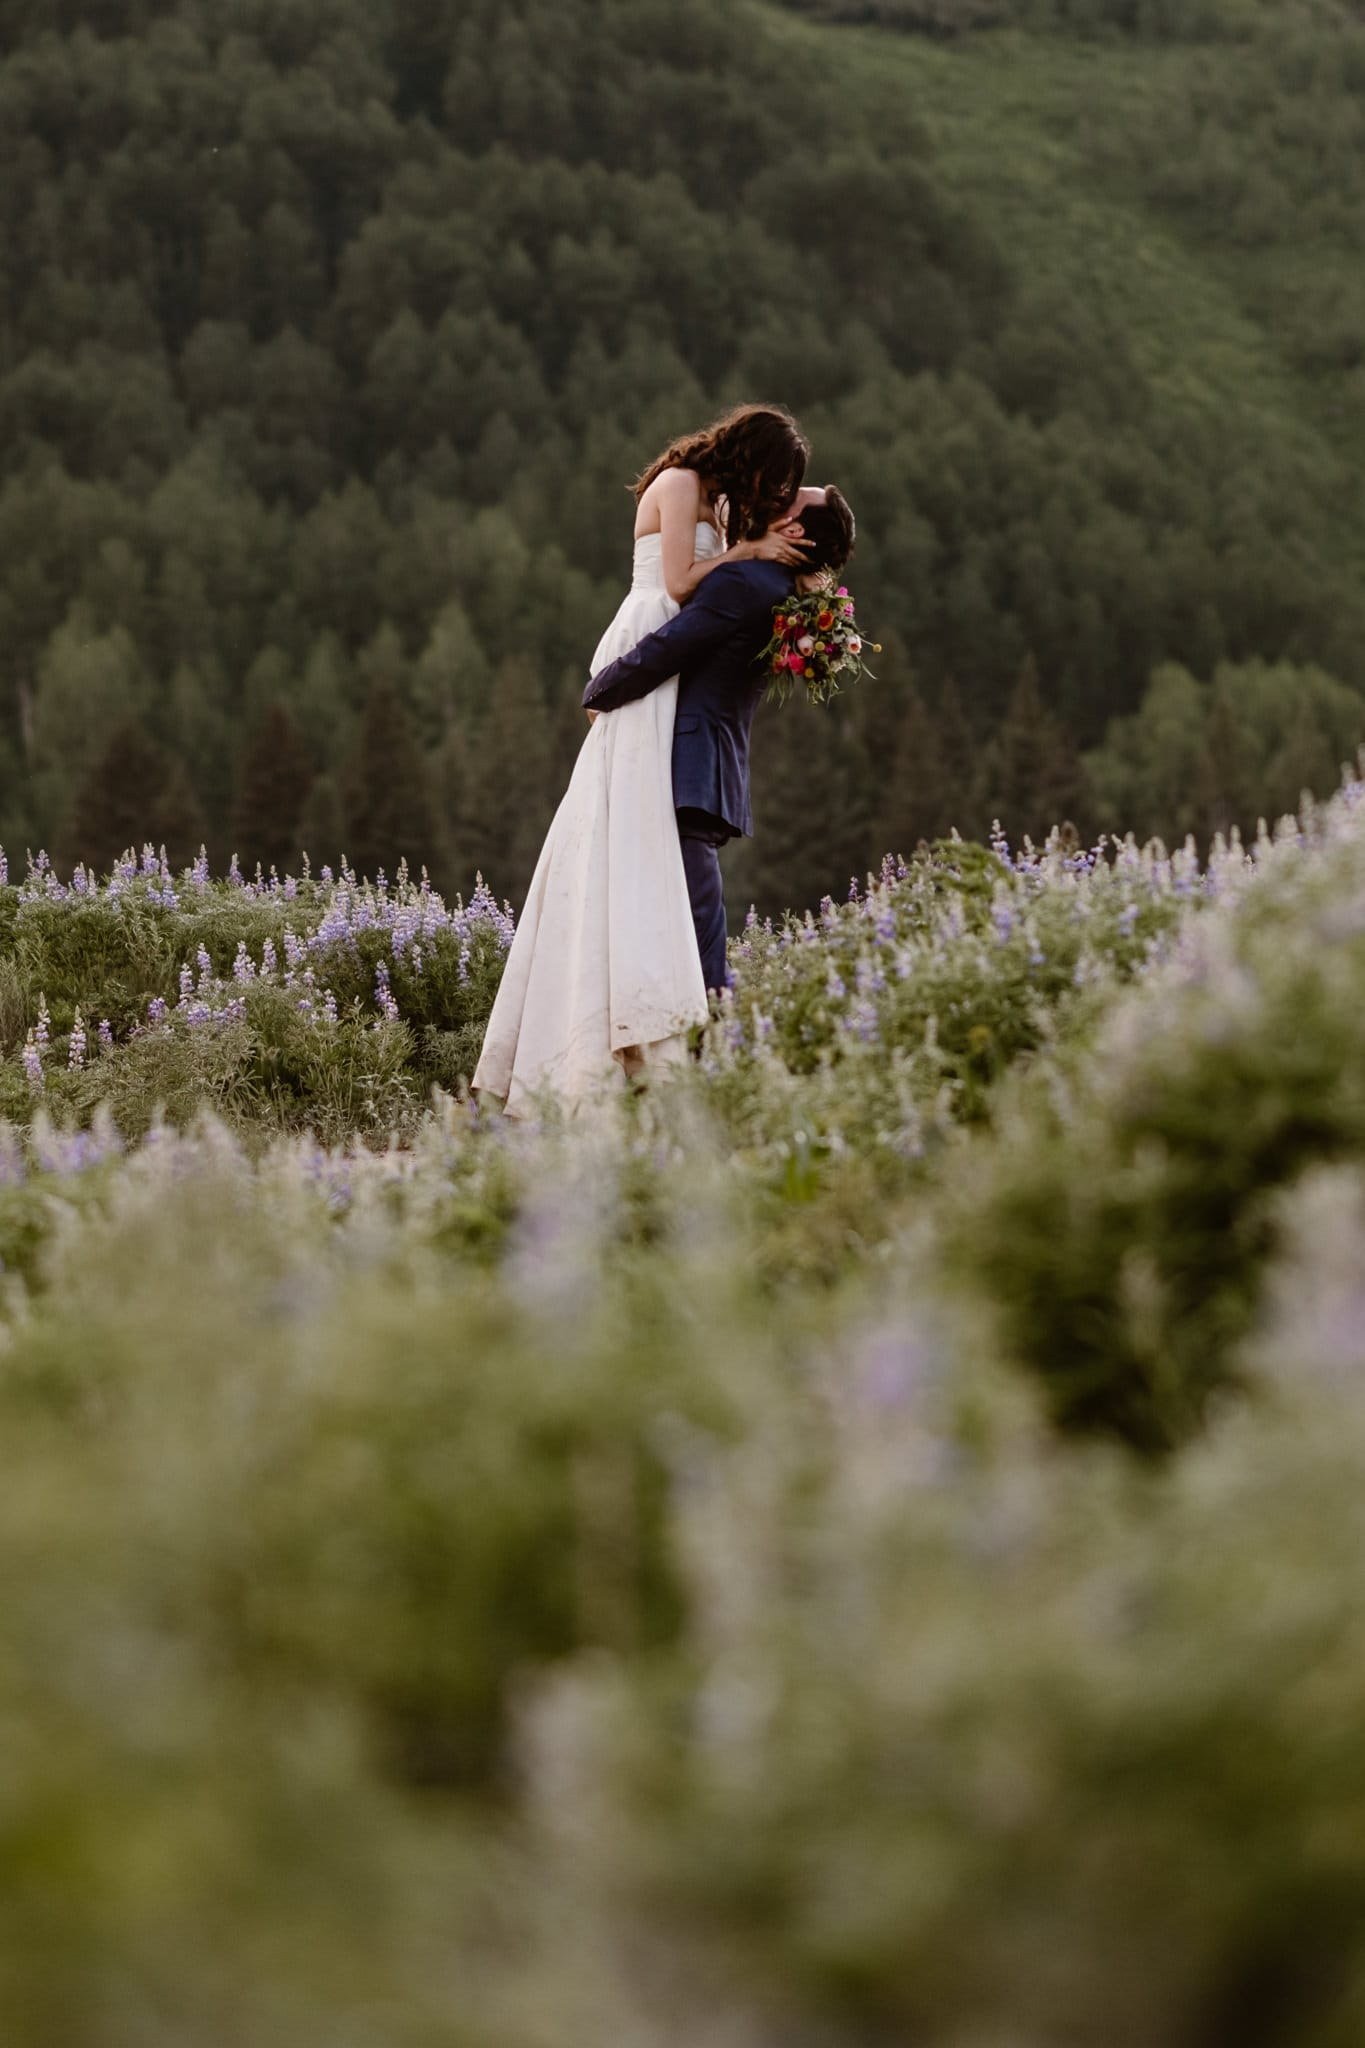 Crested Butte elopement photographer, Colorado adventure wedding photographer, bride and groom kissing in field of wildflowers